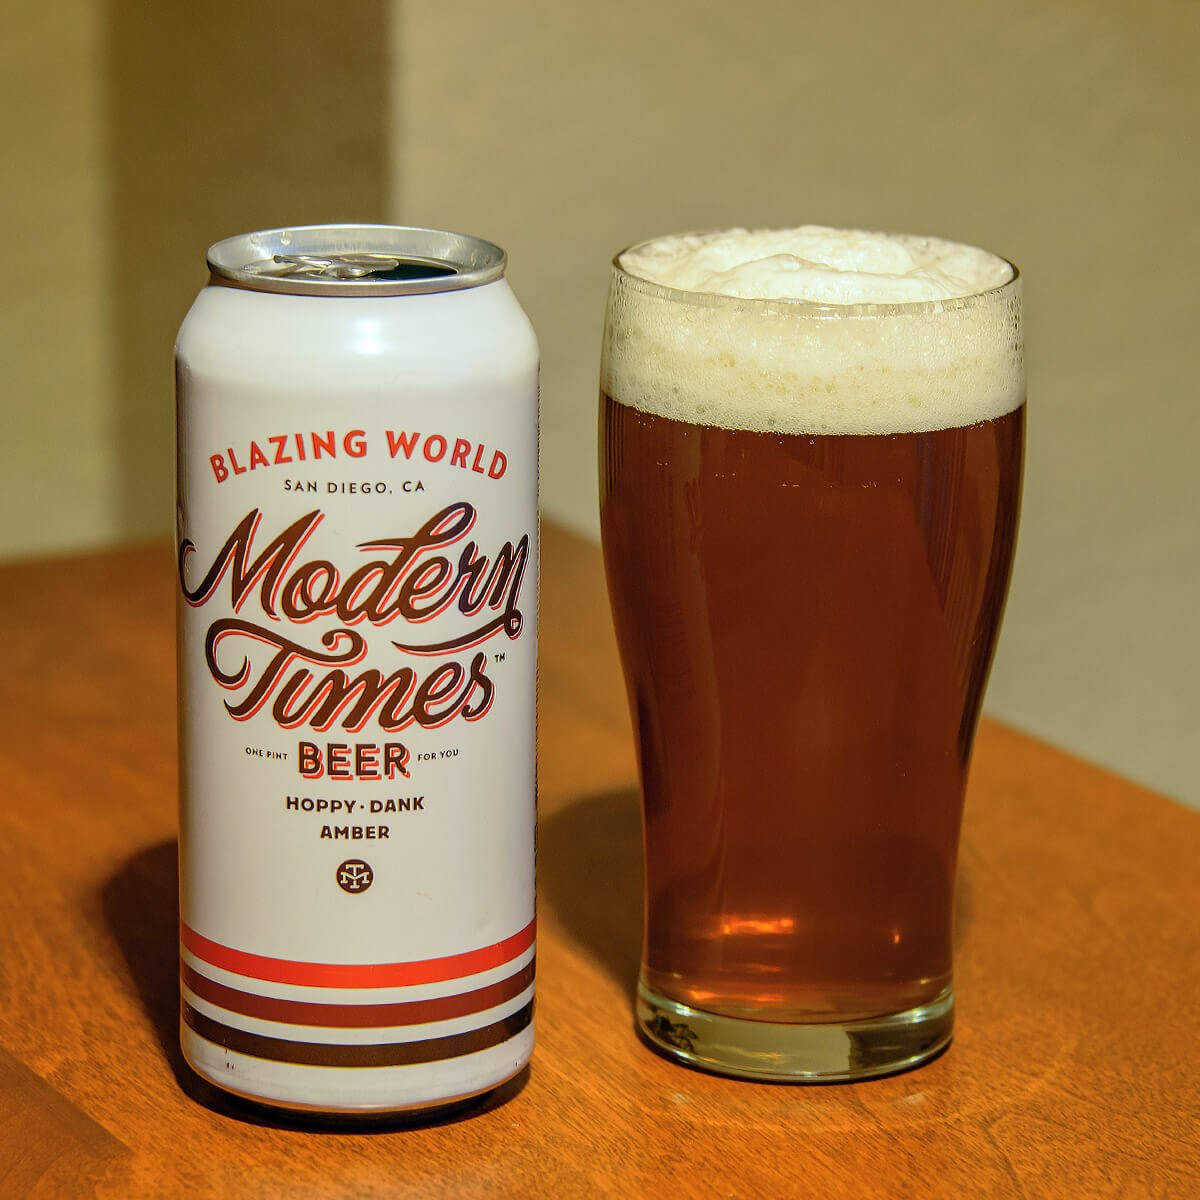 Blazing World, an American Amber Ale by Modern Times Beer